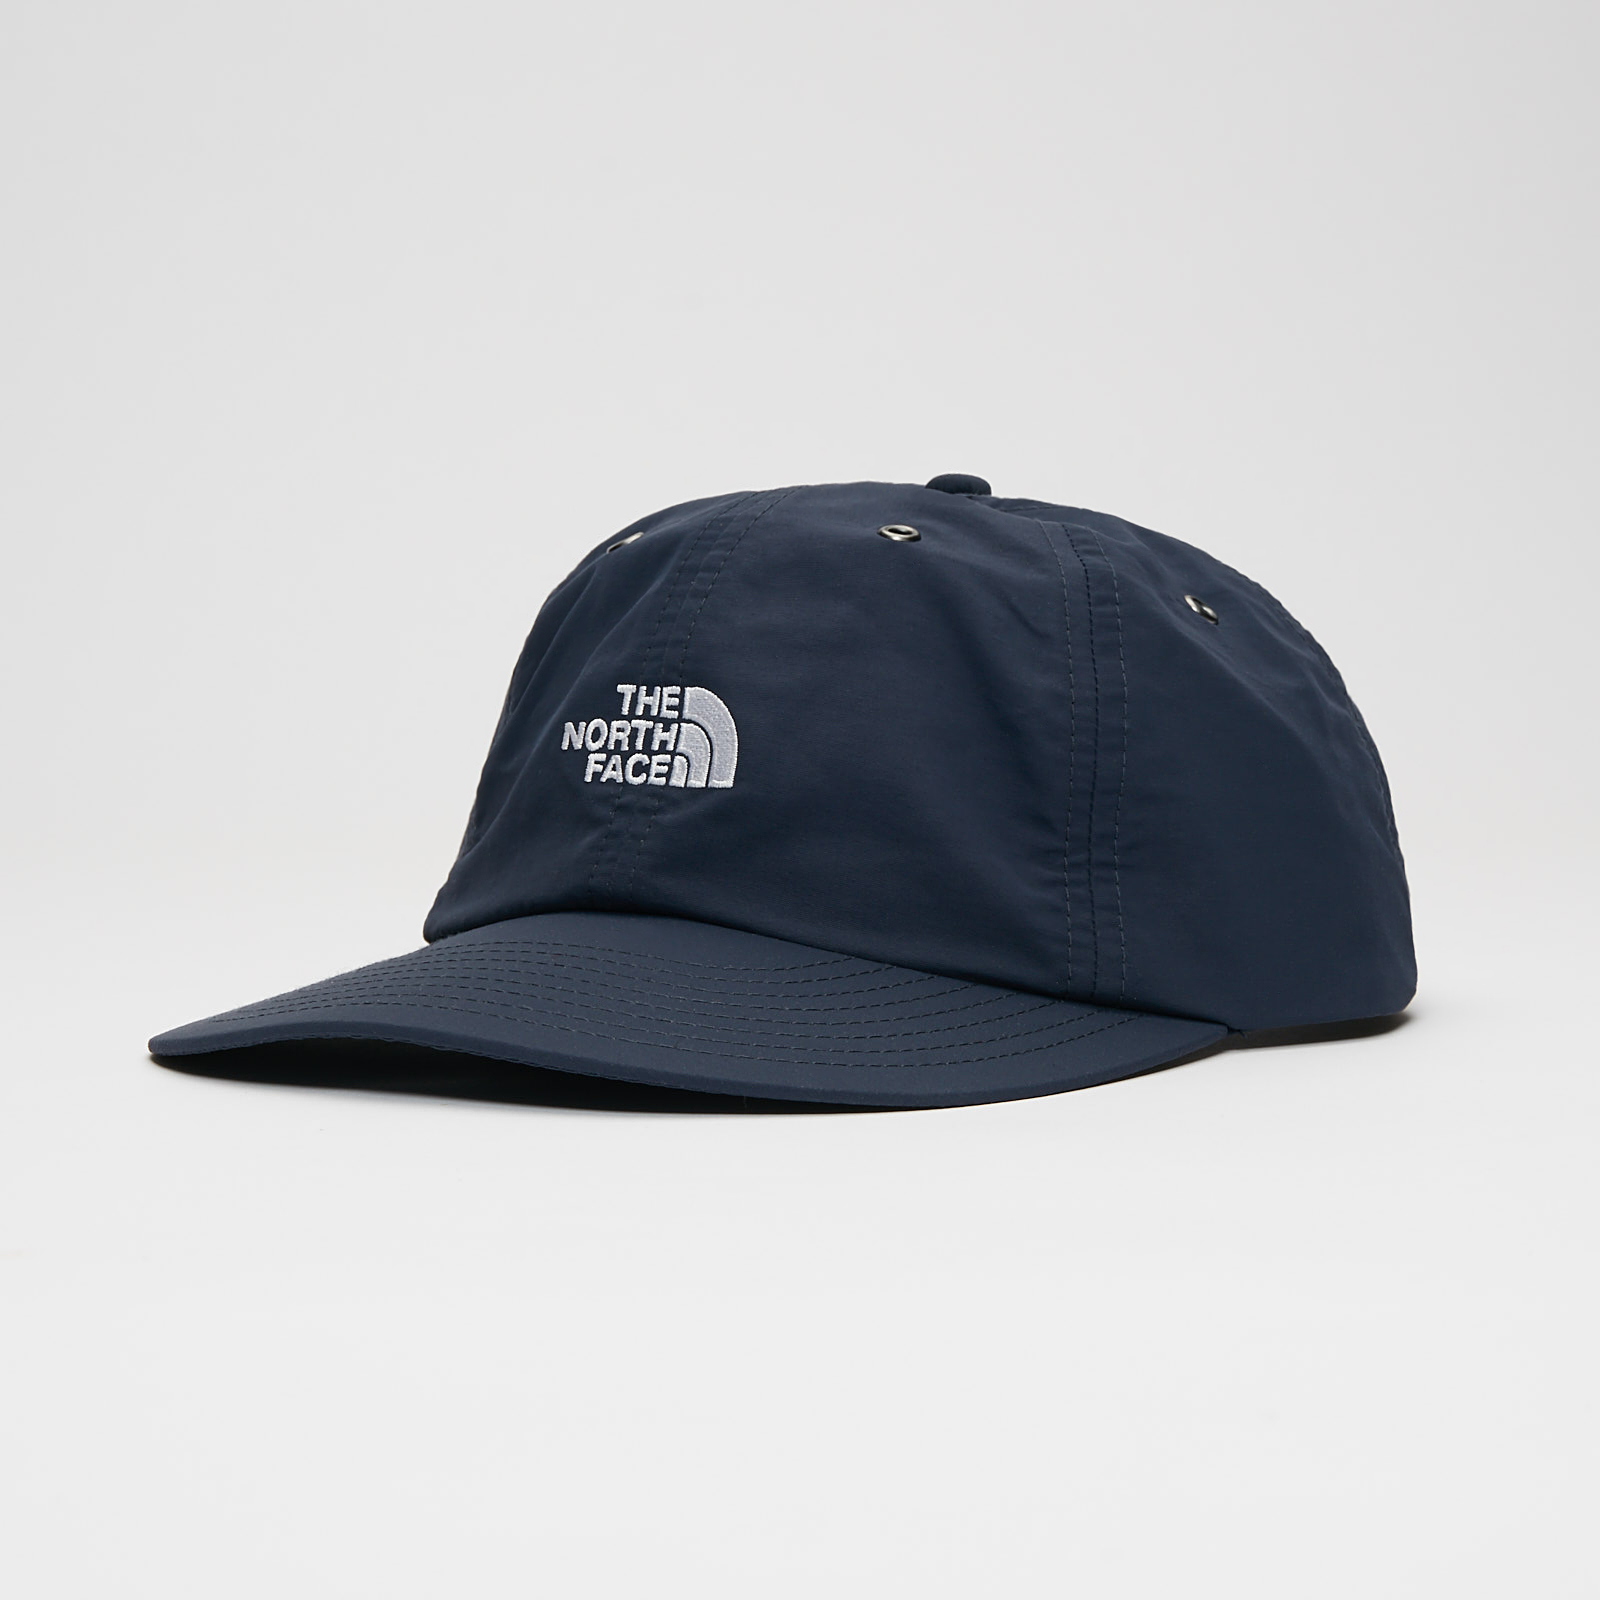 9cd1e611 The North Face Throwback Tech Hat - T93ffmm6s - Sneakersnstuff ...